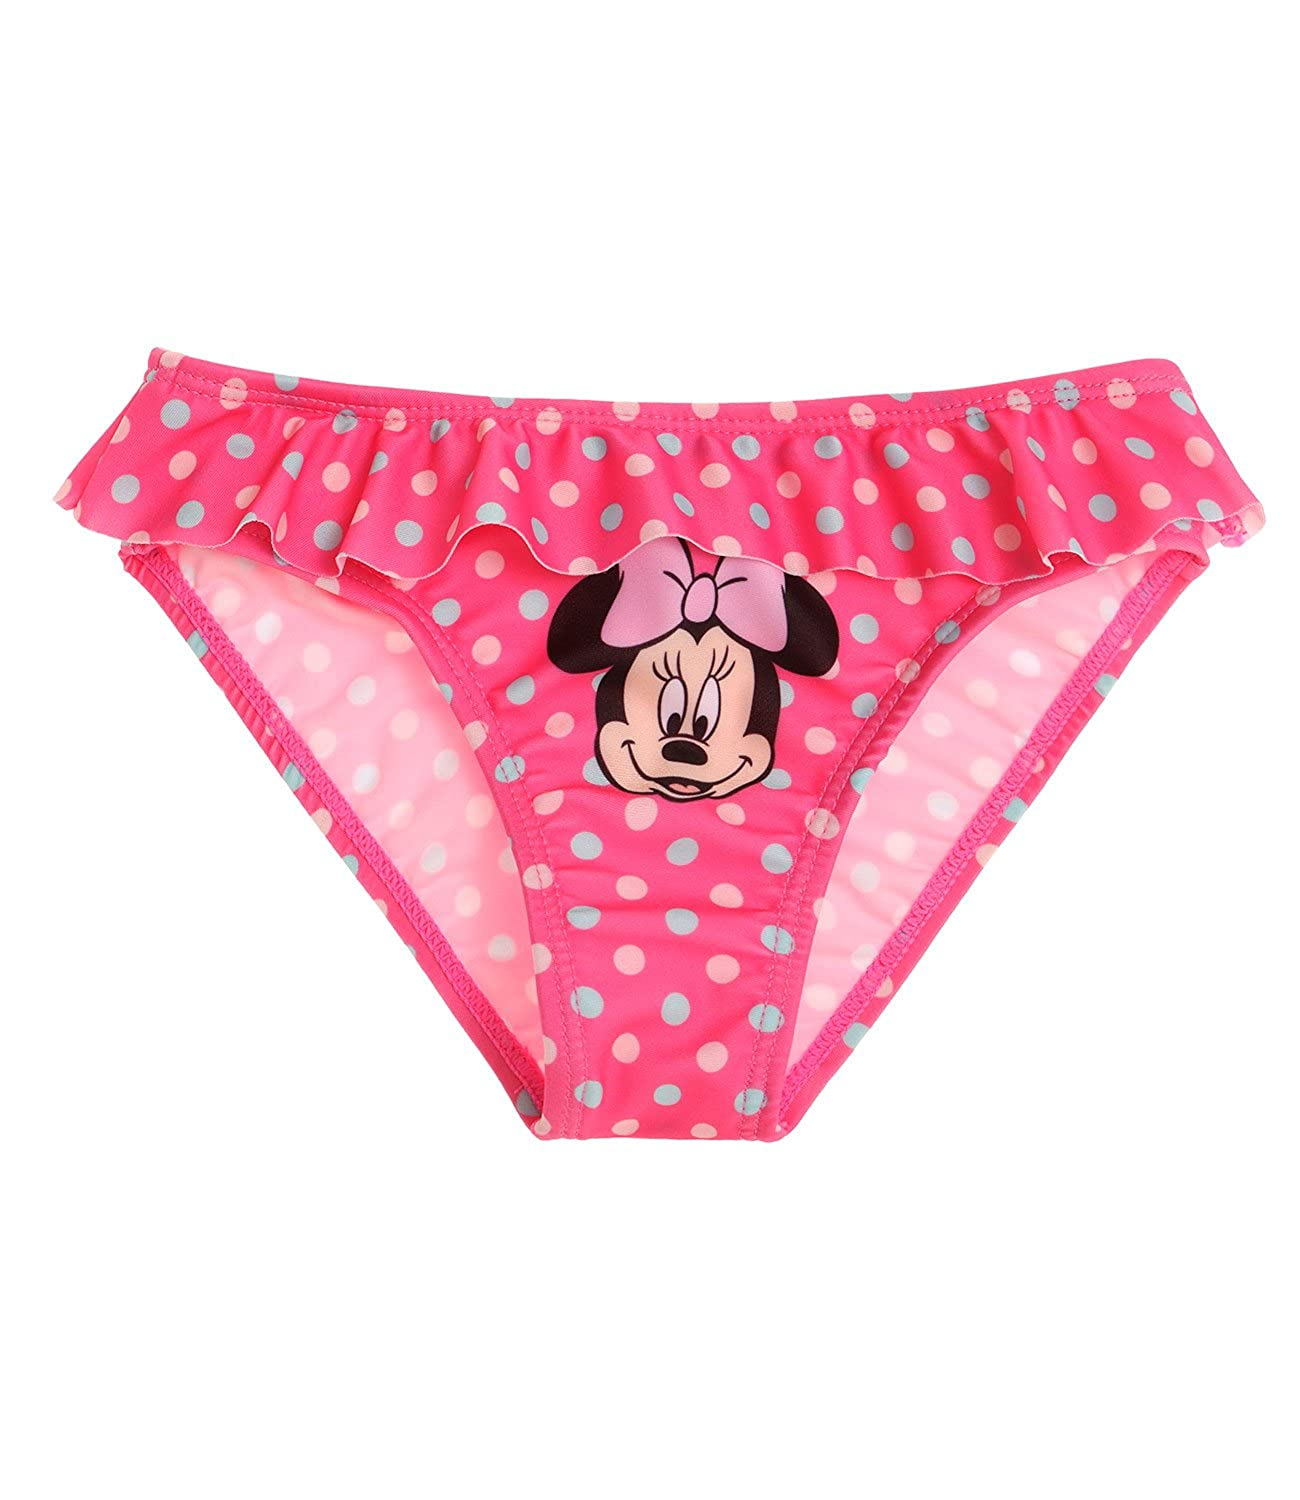 Disney Minnie Ragazze Shorts da mare 2016 Collection - fucsia